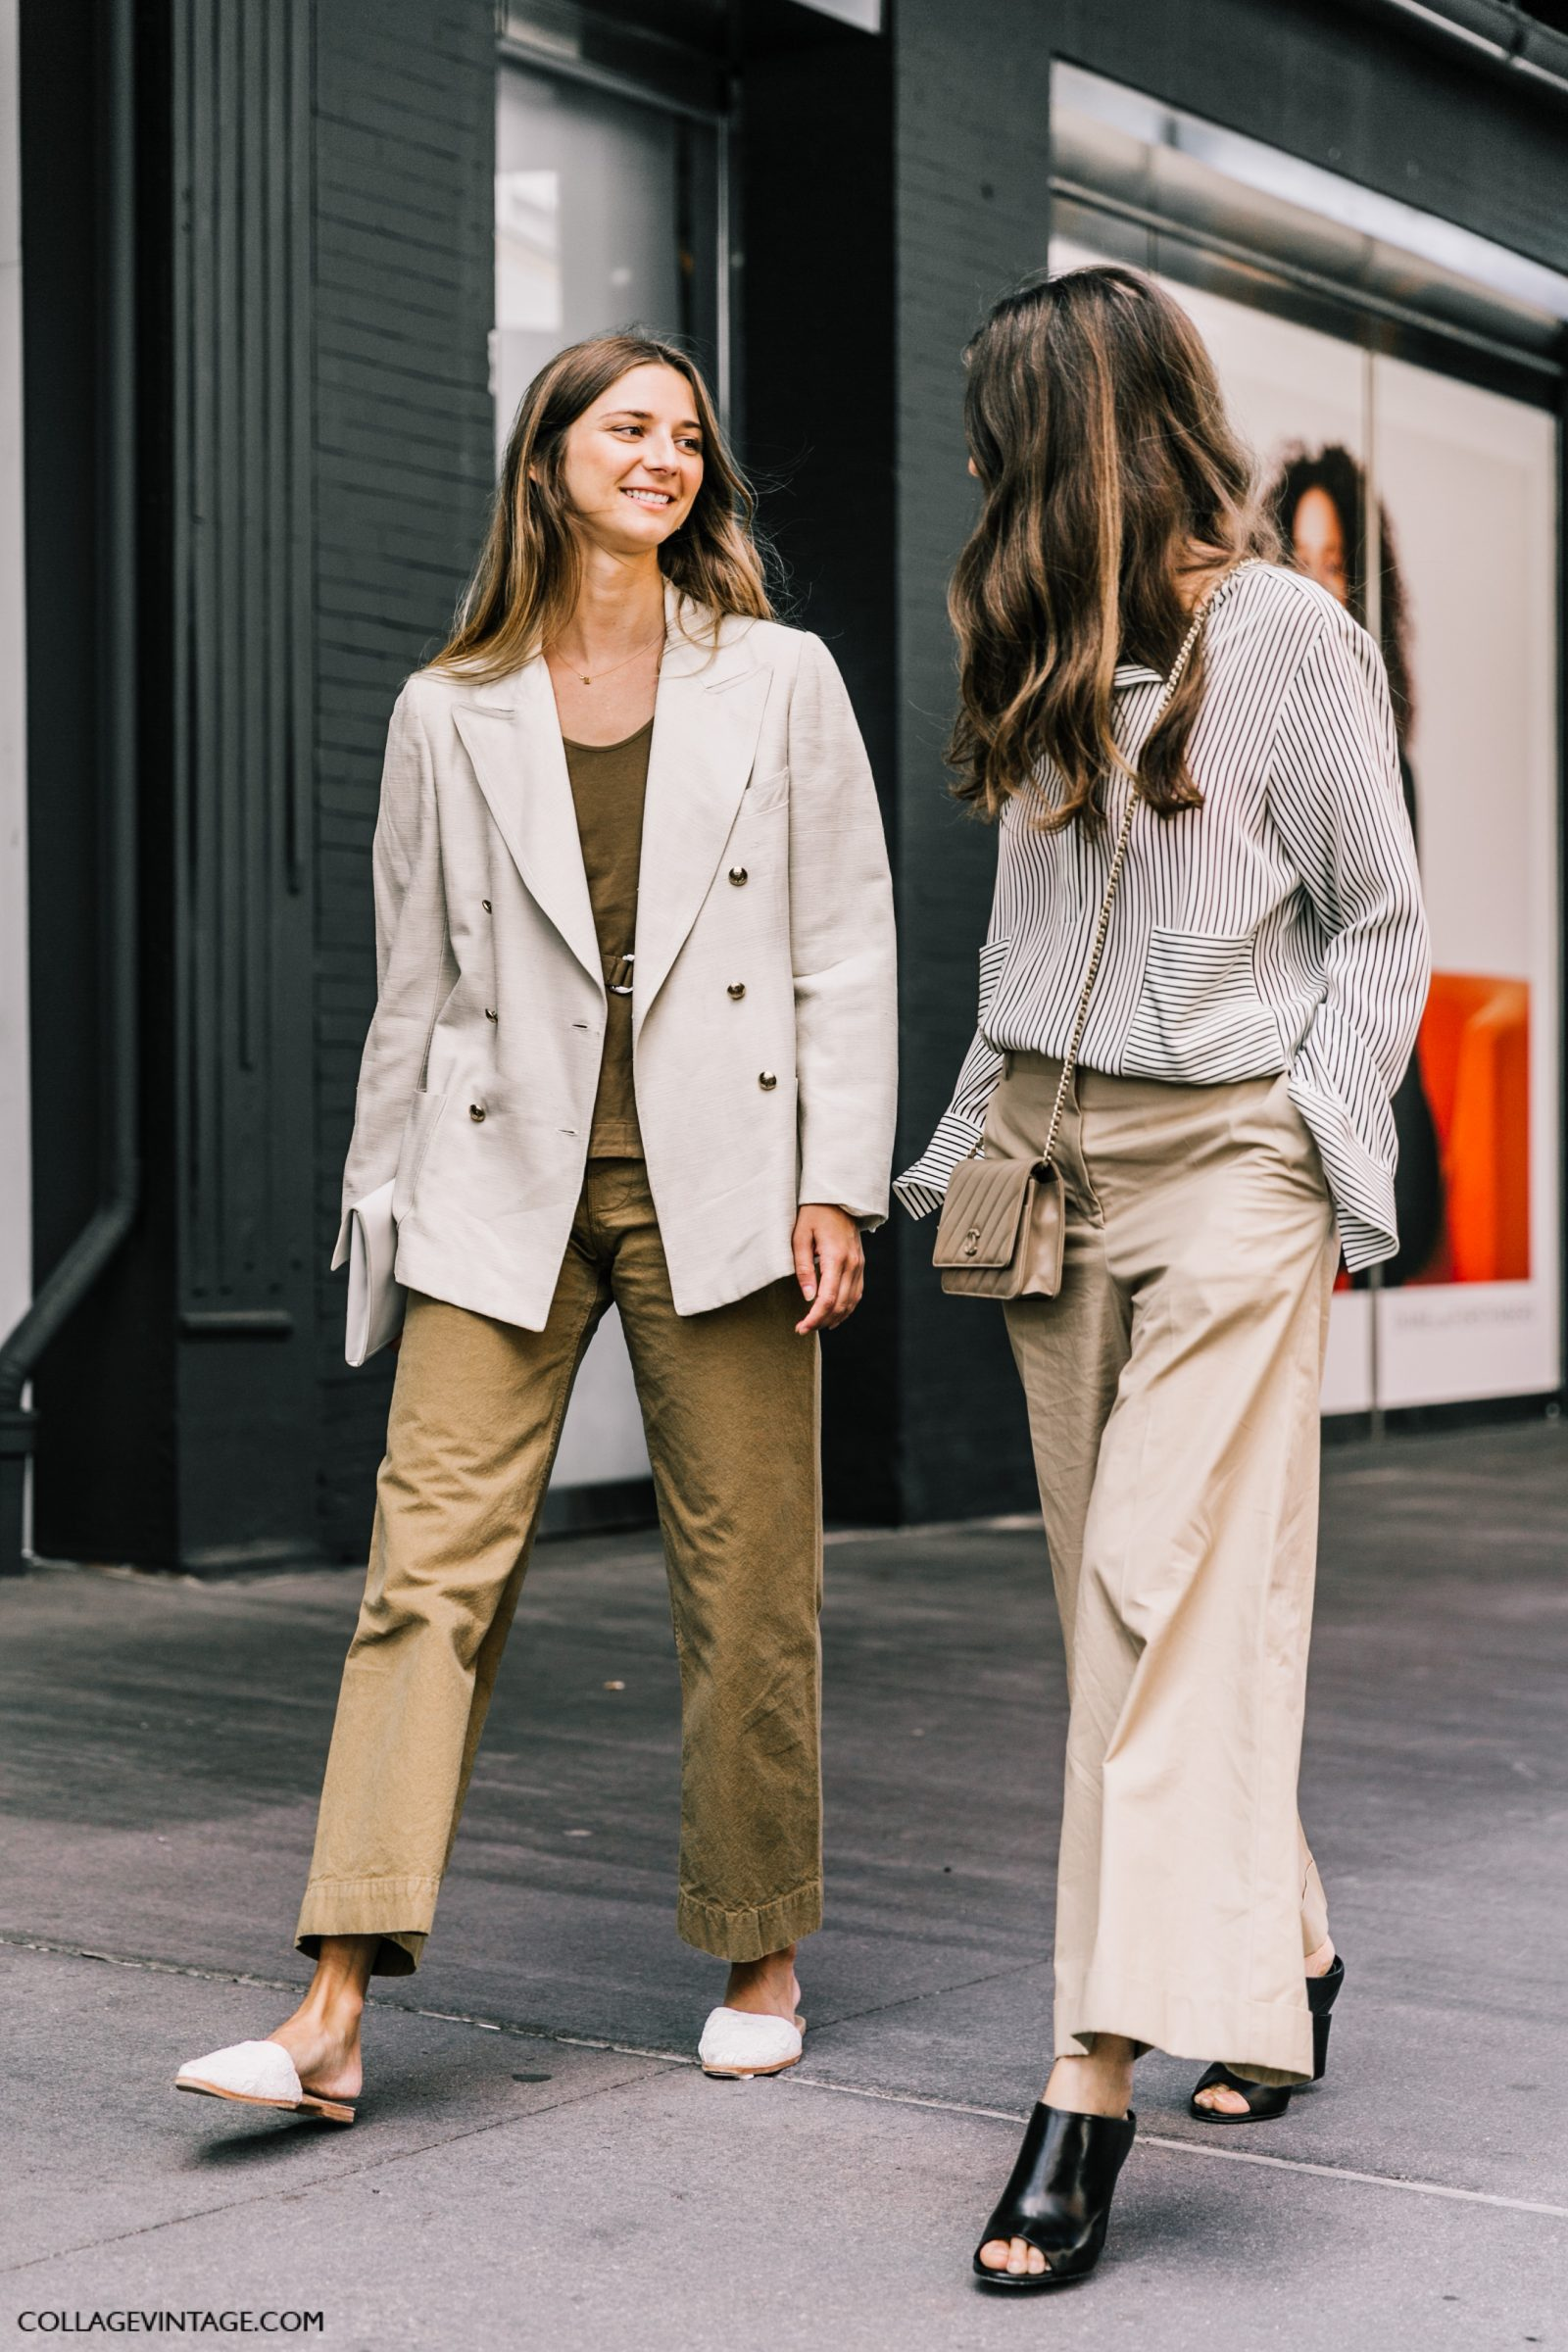 The Ways I Want To Wear Khaki